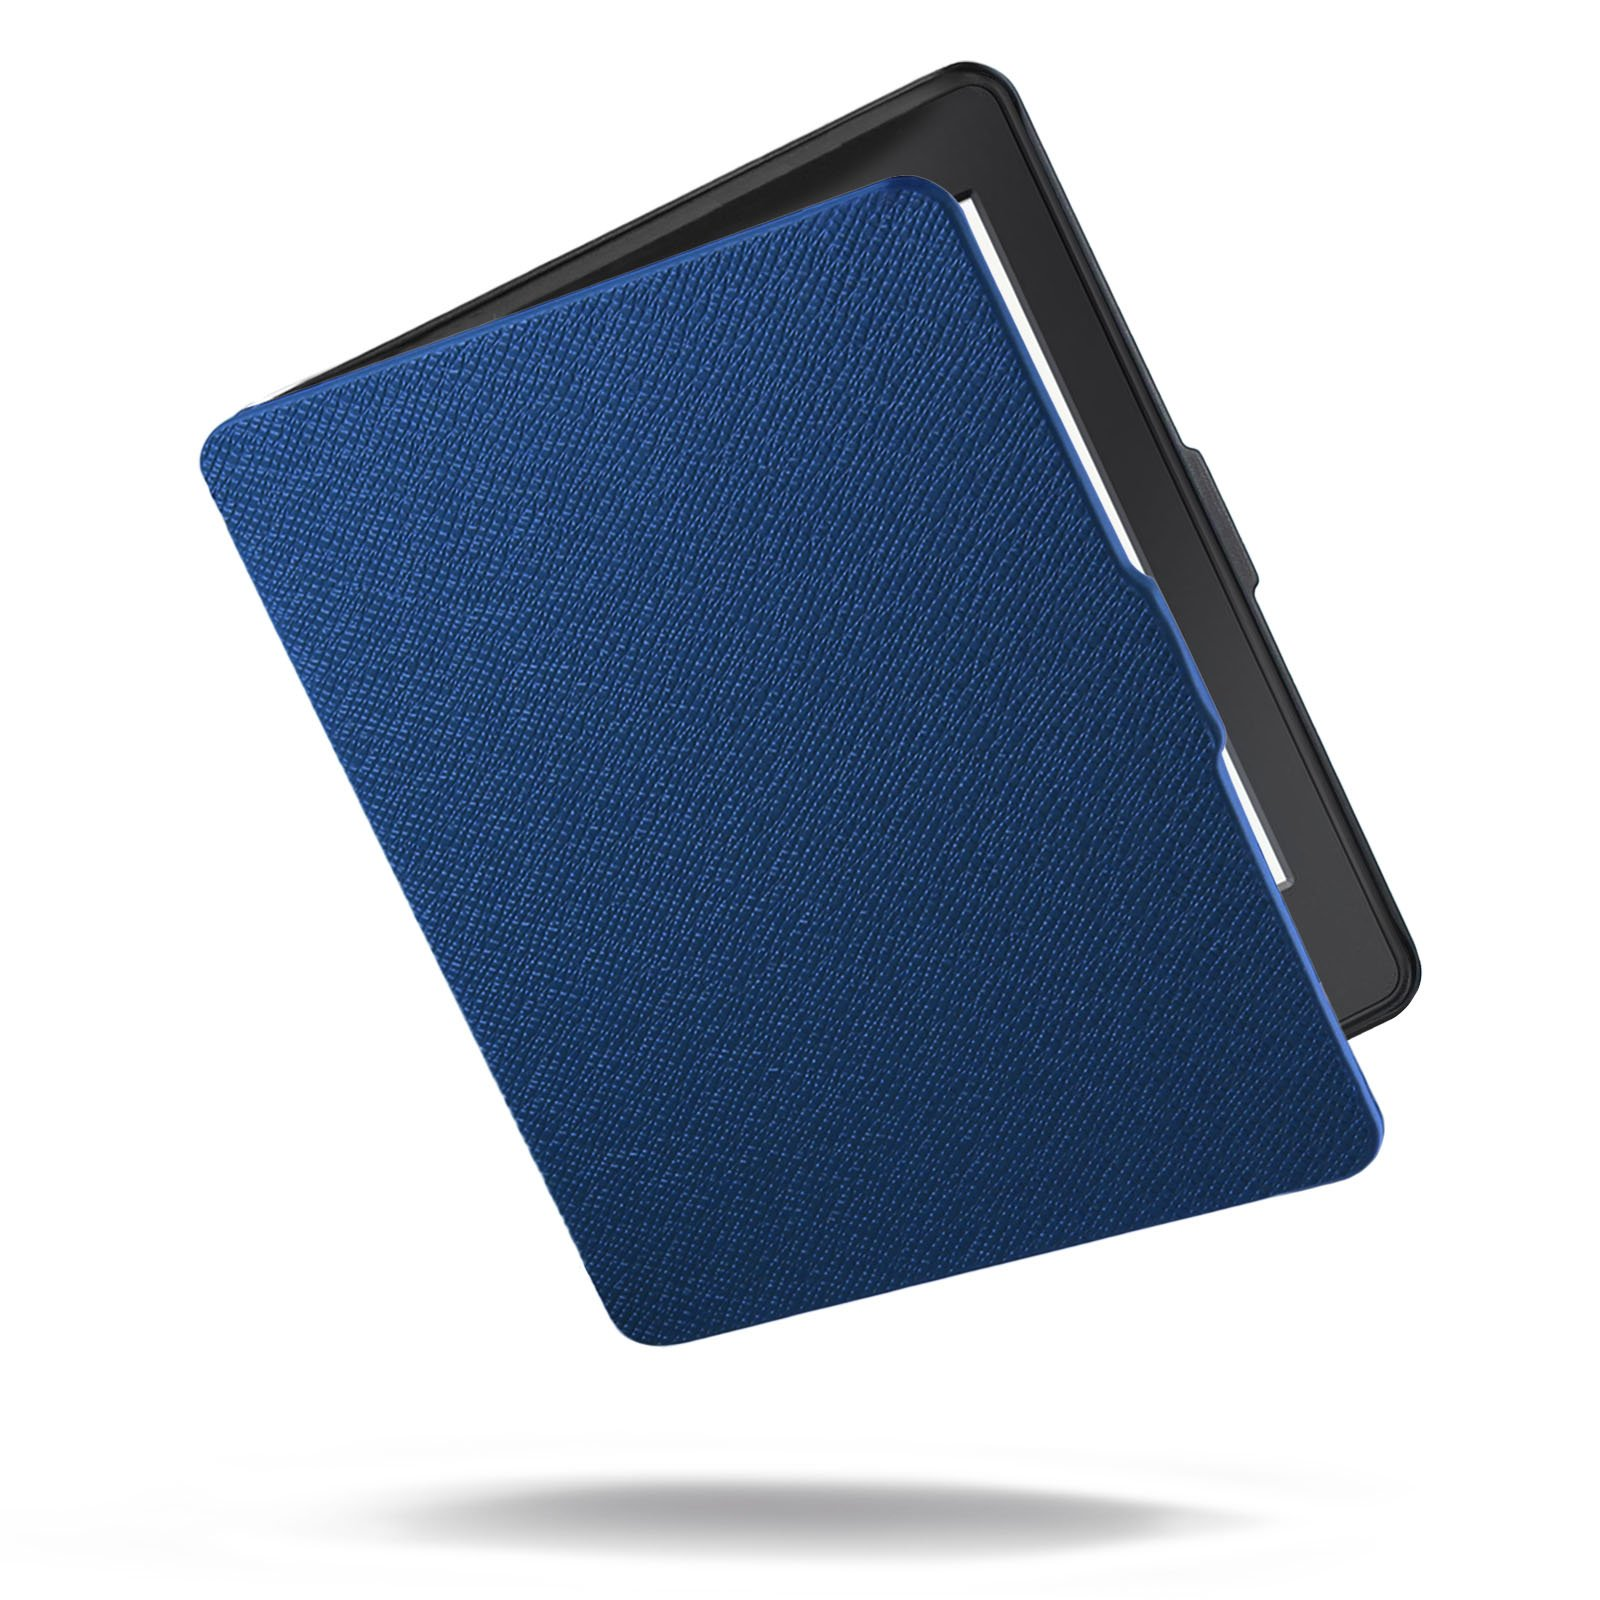 Kindle Paperwhite Case - Infiland Ultra Lightweight Shell Smart Cover for All-New Amazon Kindle Paperwhite (Fits All versions: 2012, 2013, 2014 and 2015 New 300 PPI)- Navy